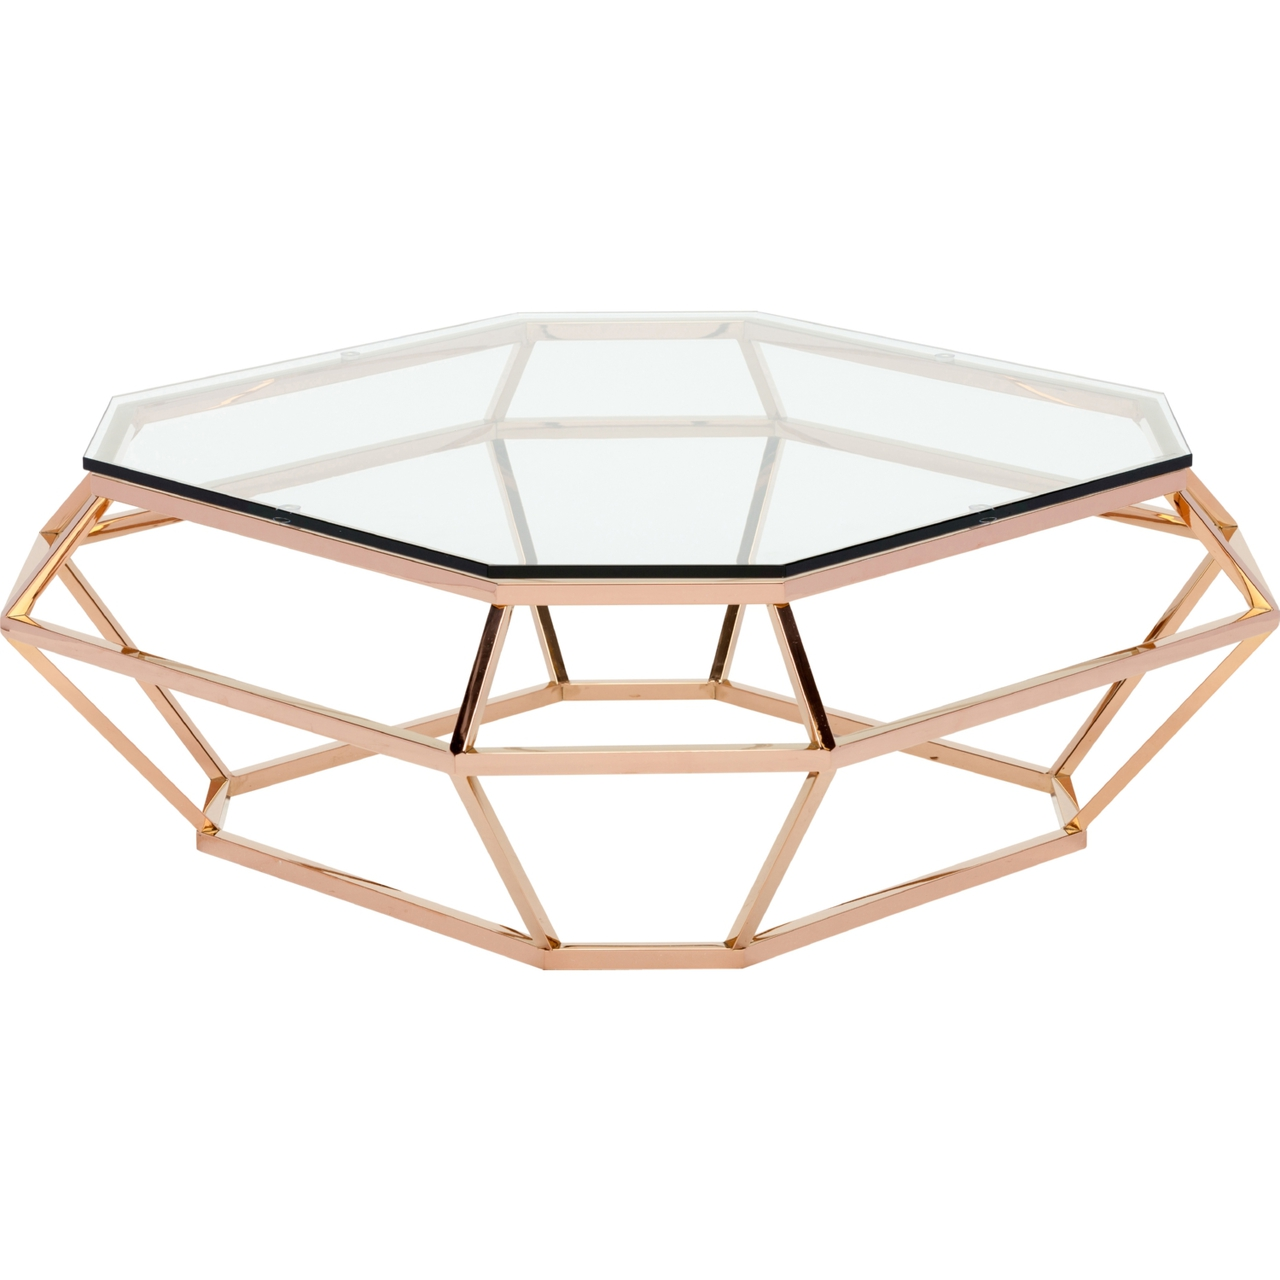 Charles Modern 47 Square Glass Top Coffee Table W: Nuevo Diamond Square Coffee Table Stainless Steel Or Rose